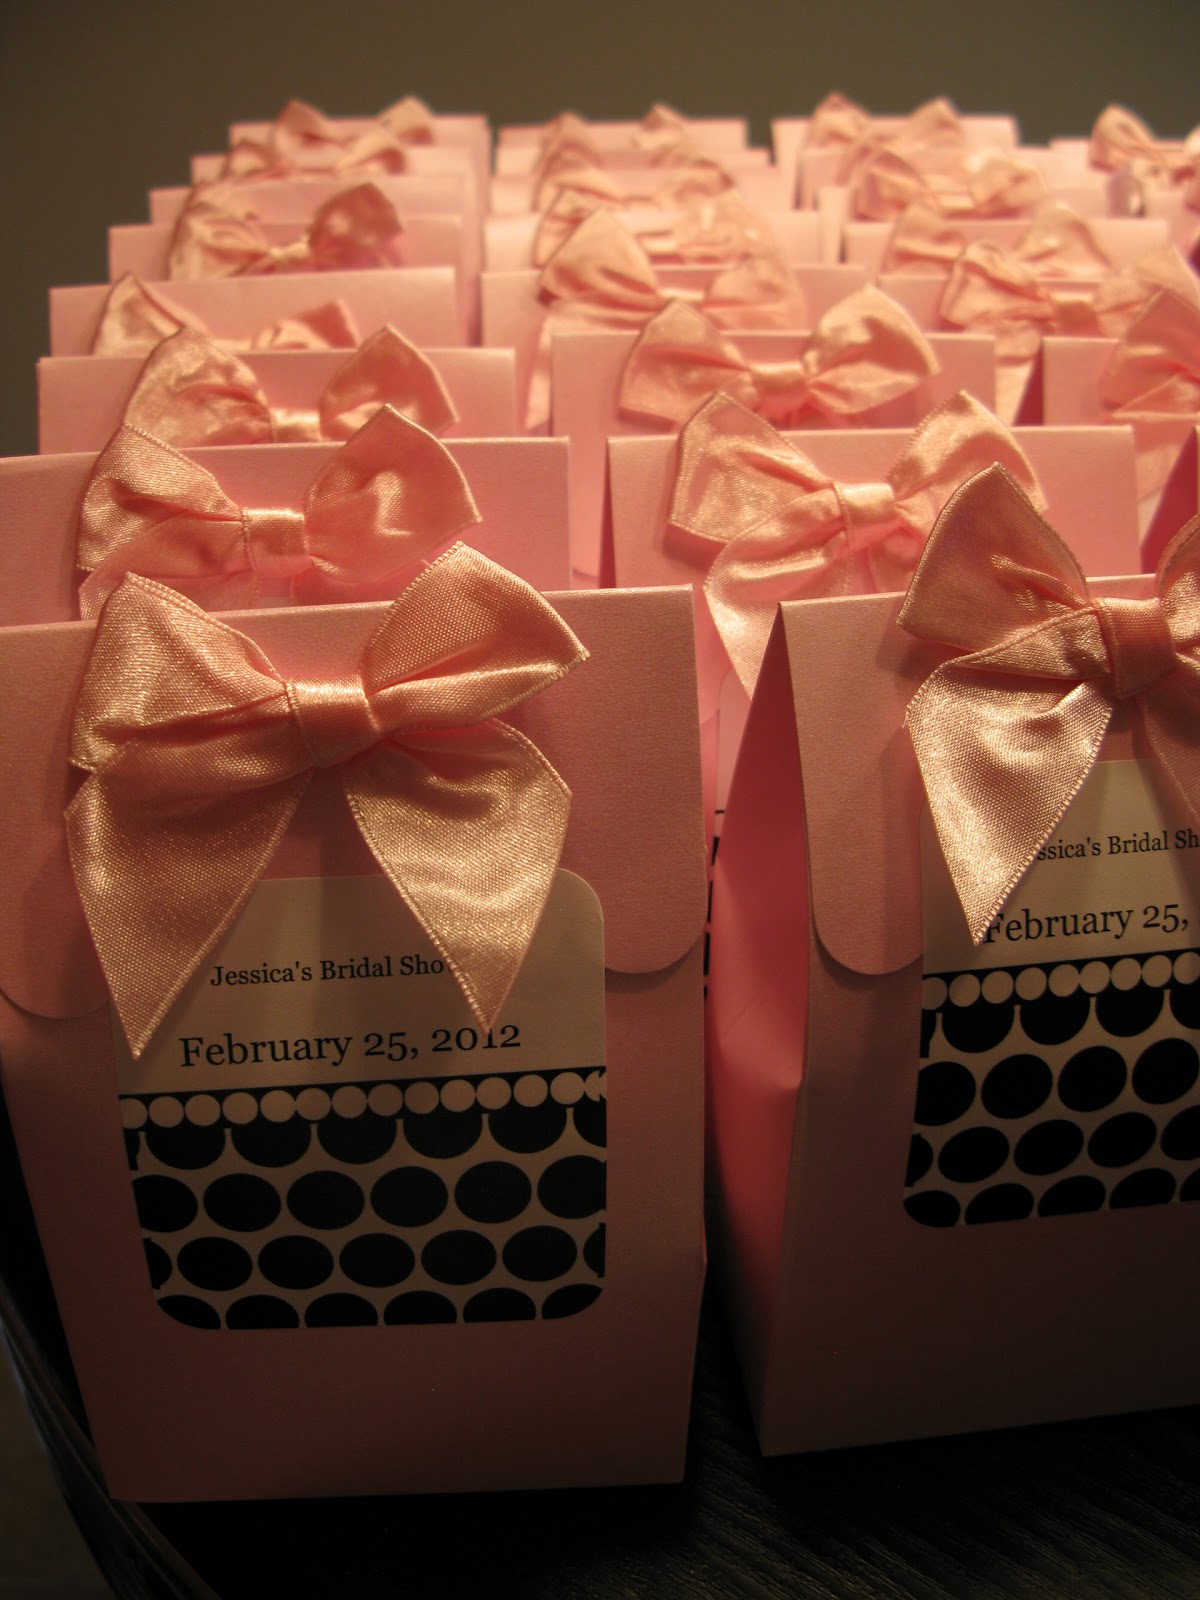 Wedding Shower Goodie Bag Ideas : Goodie bags complete!